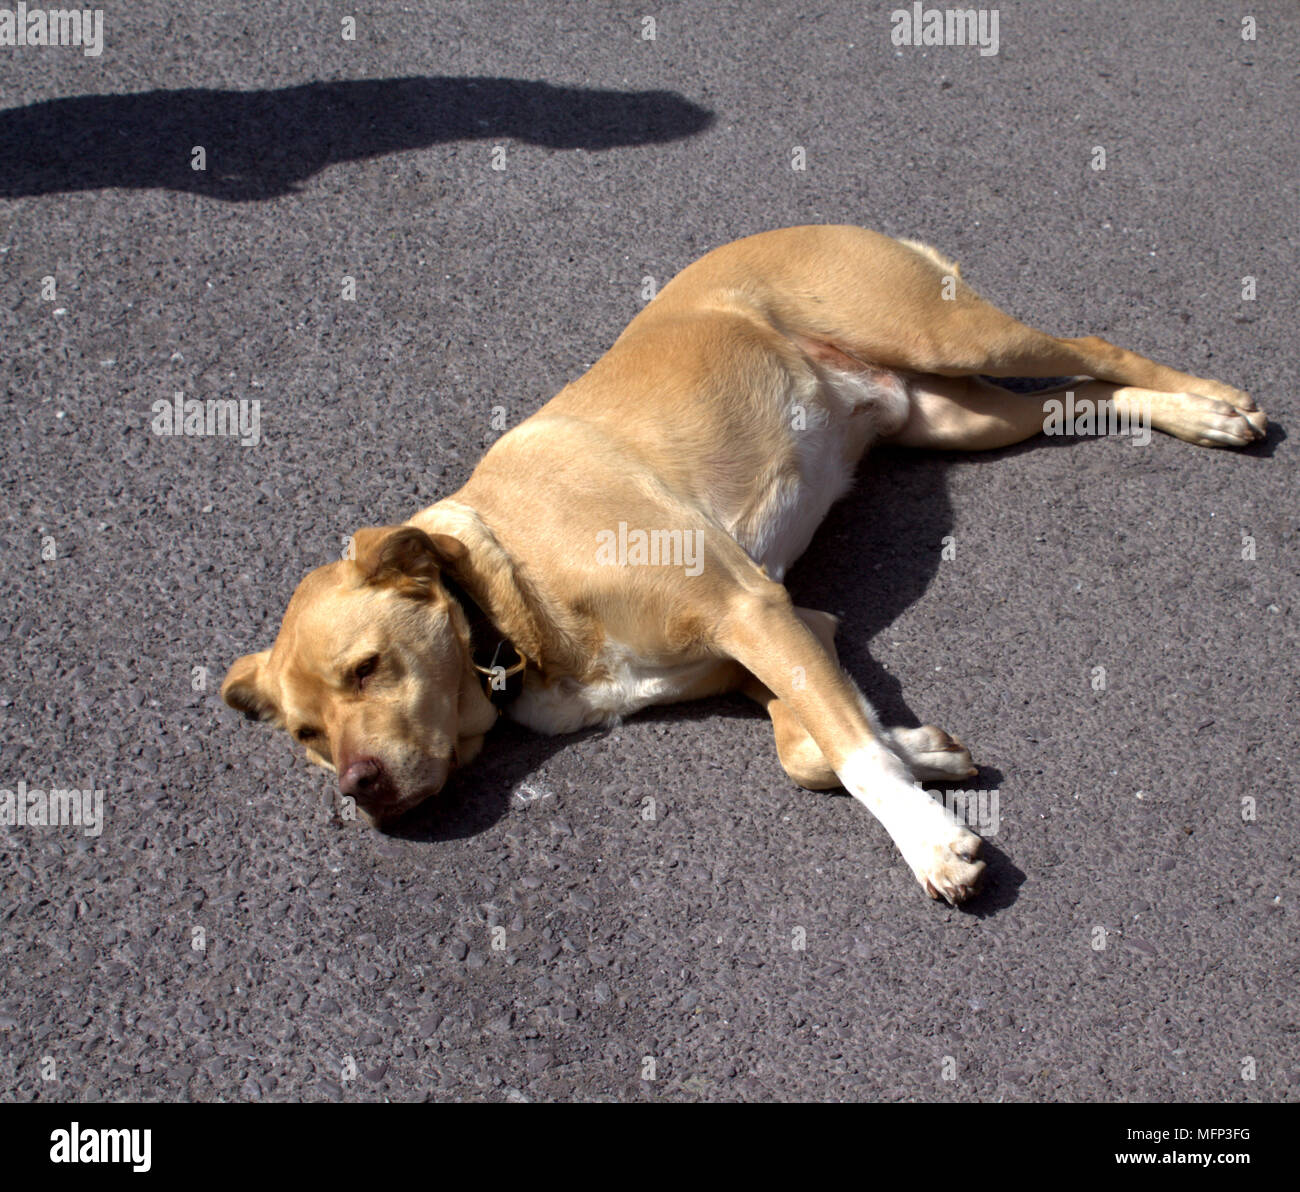 dog asleep in the road on a hot summers day. - Stock Image